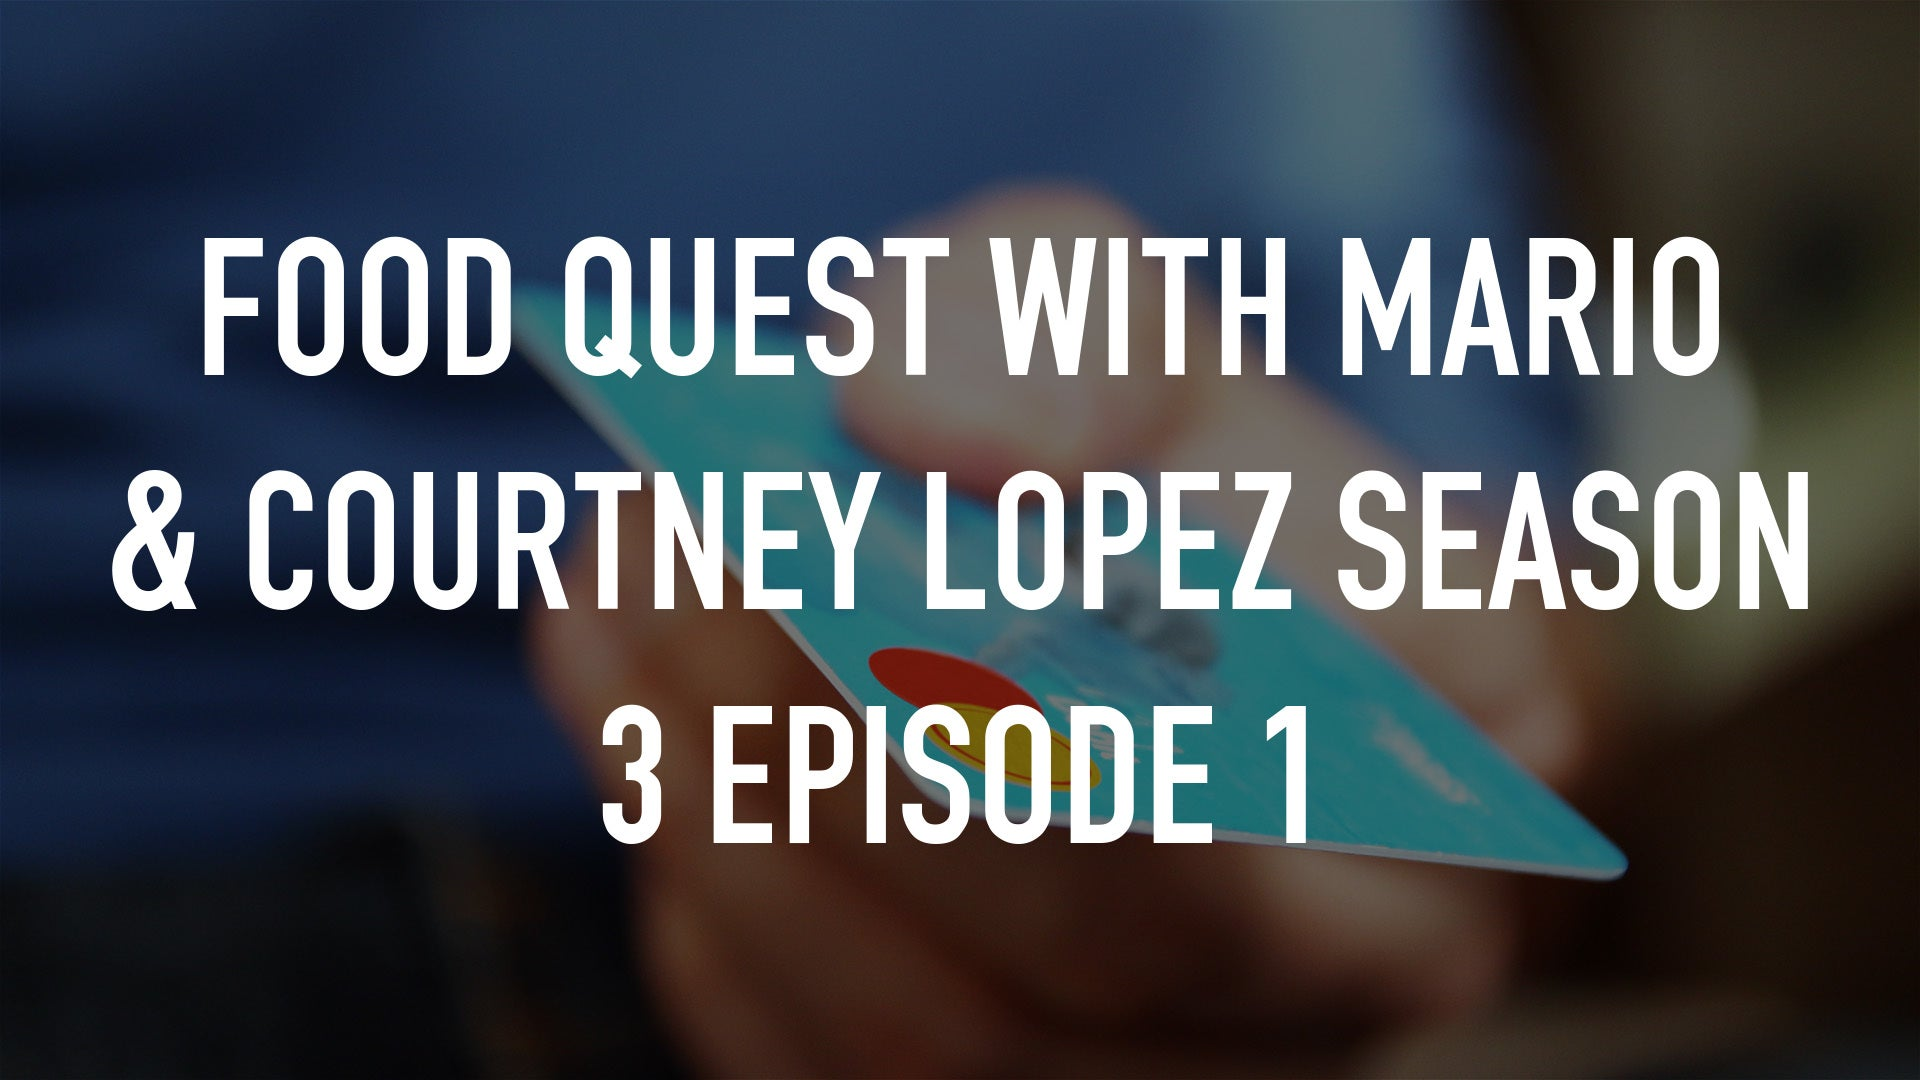 Food Quest with Mario & Courtney Lopez Season 3 Episode 1